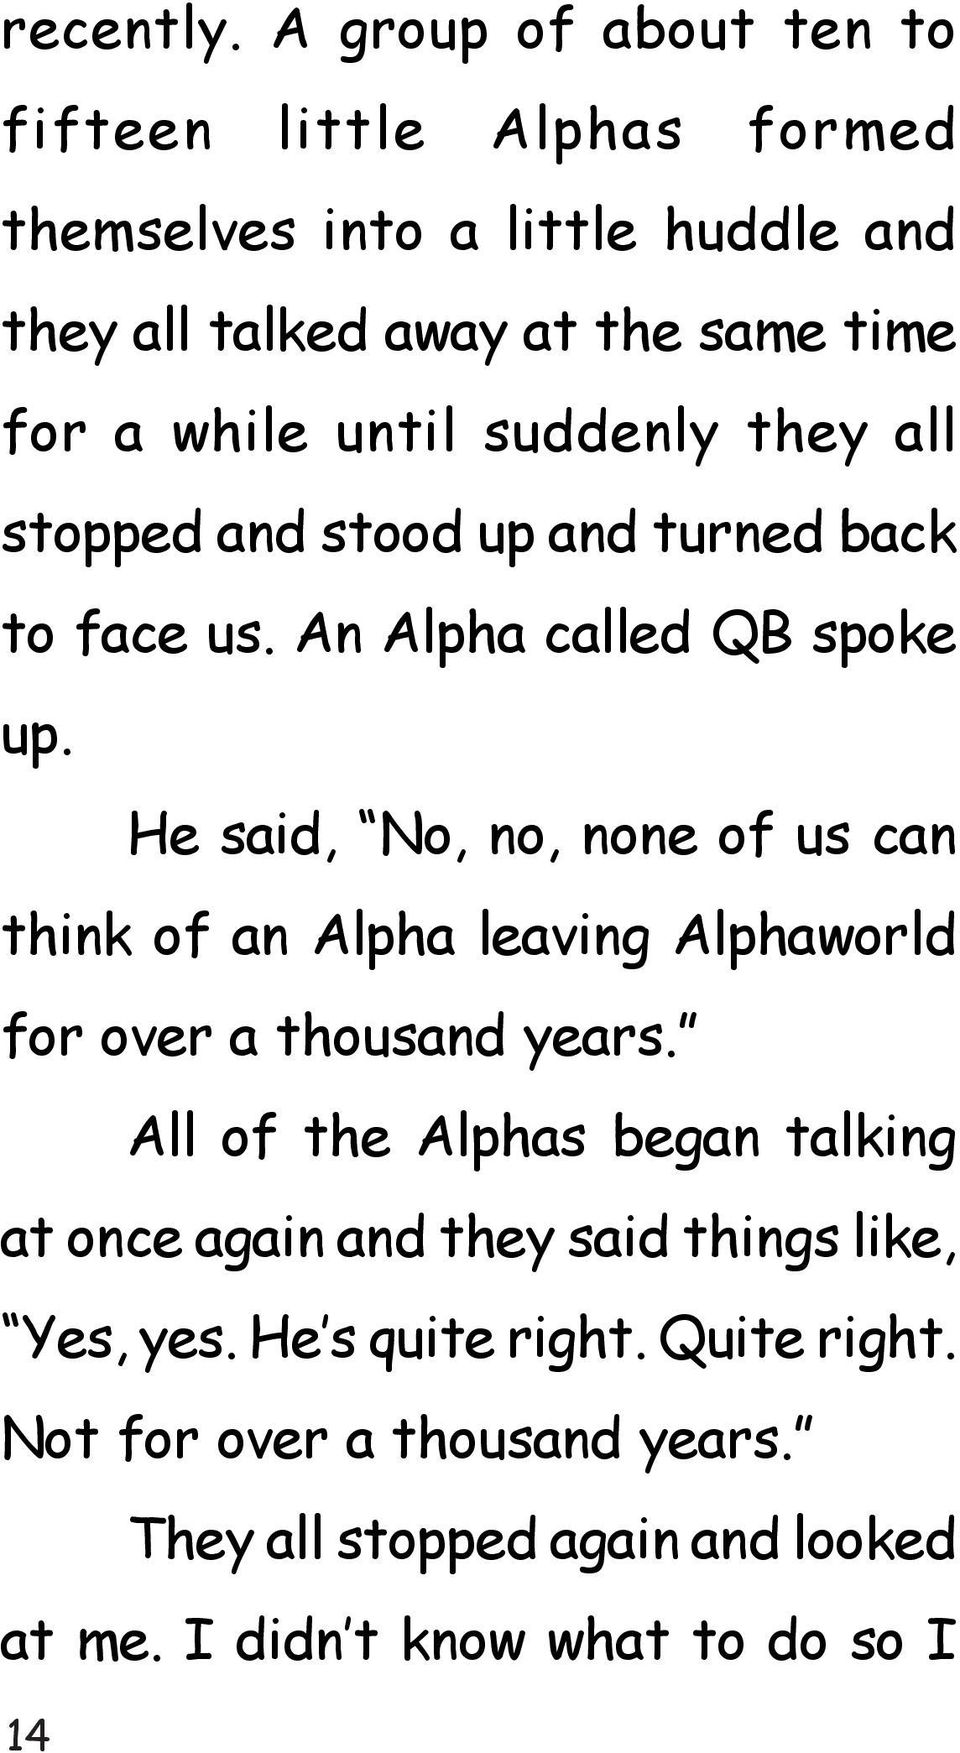 until suddenly they all stopped and stood up and turned back to face us. An Alpha called QB spoke up.